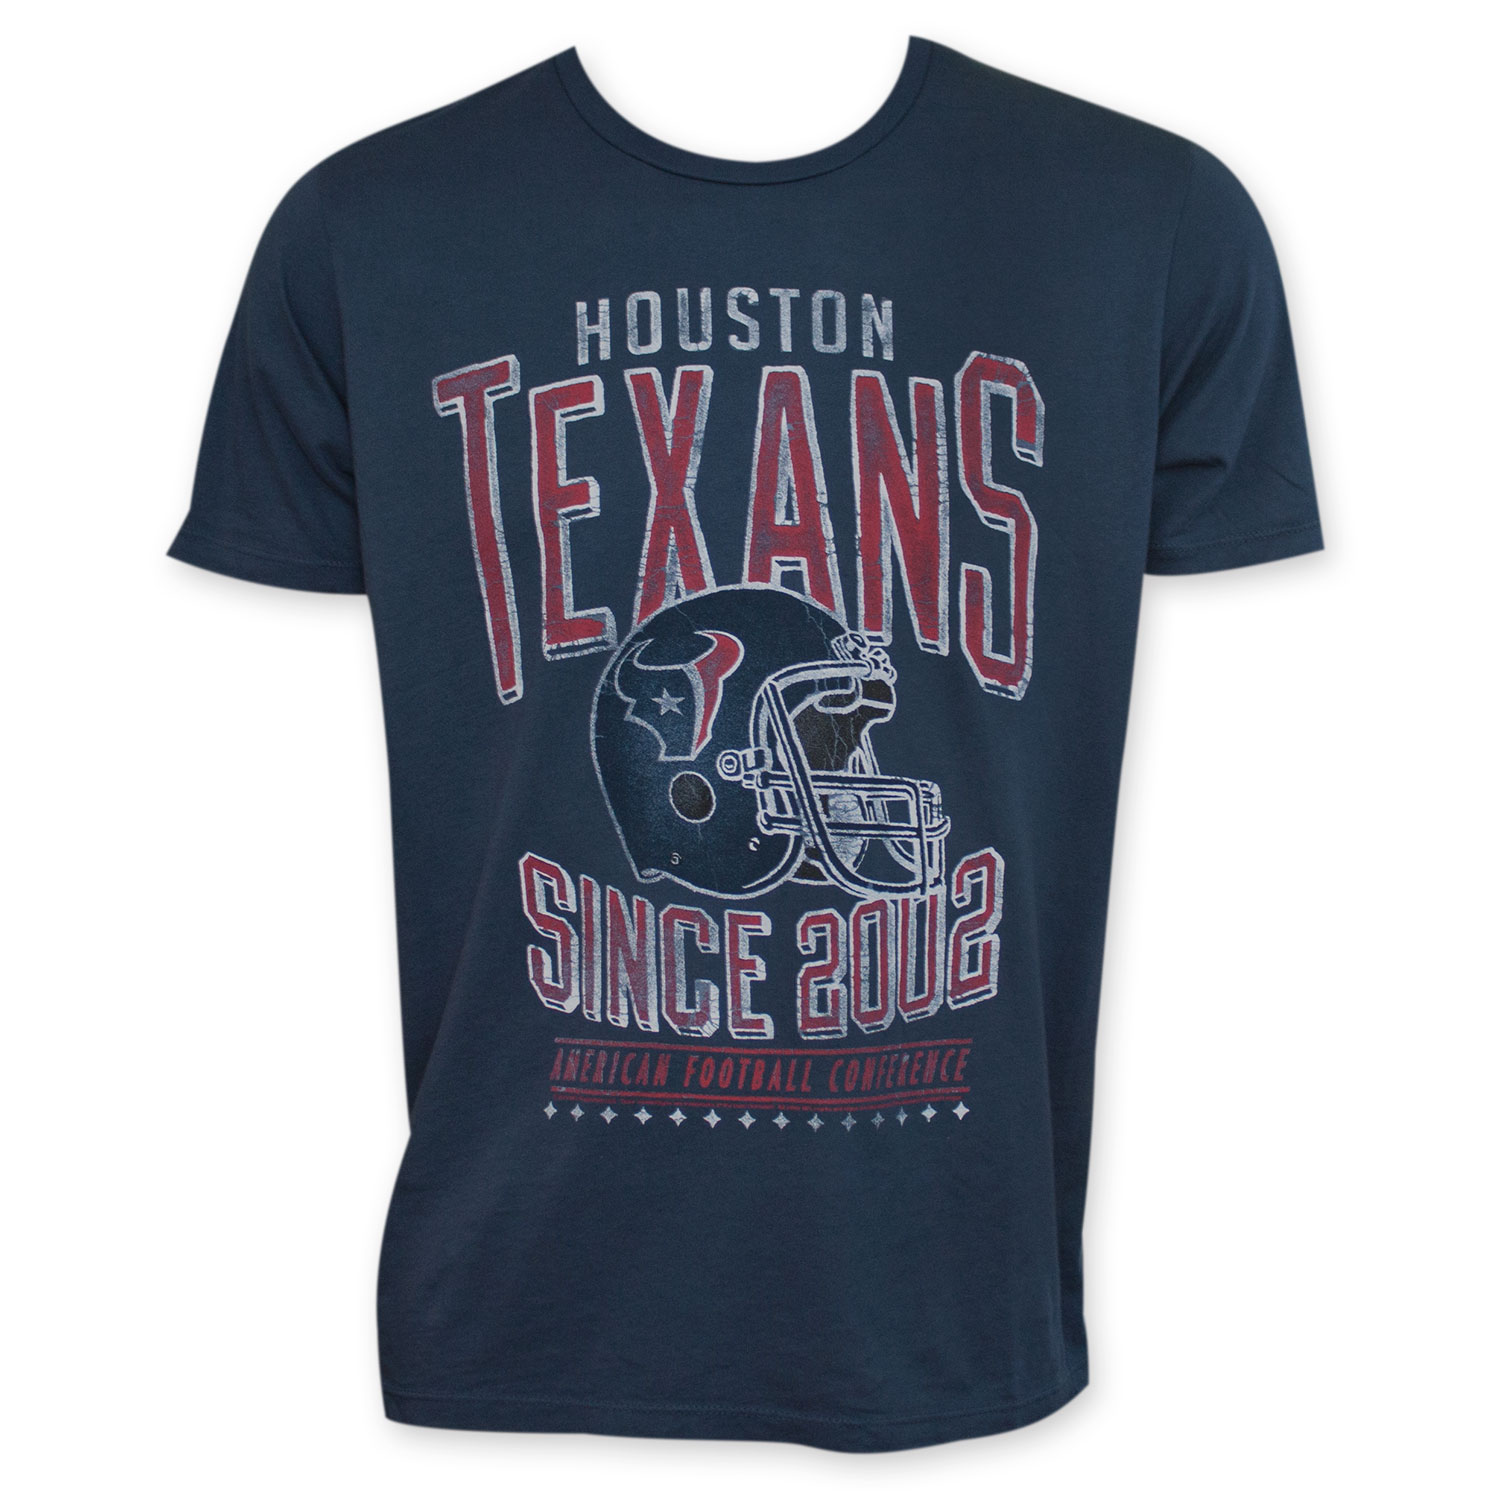 Navy Blue Houston Texans 2002 NFL T-Shirt